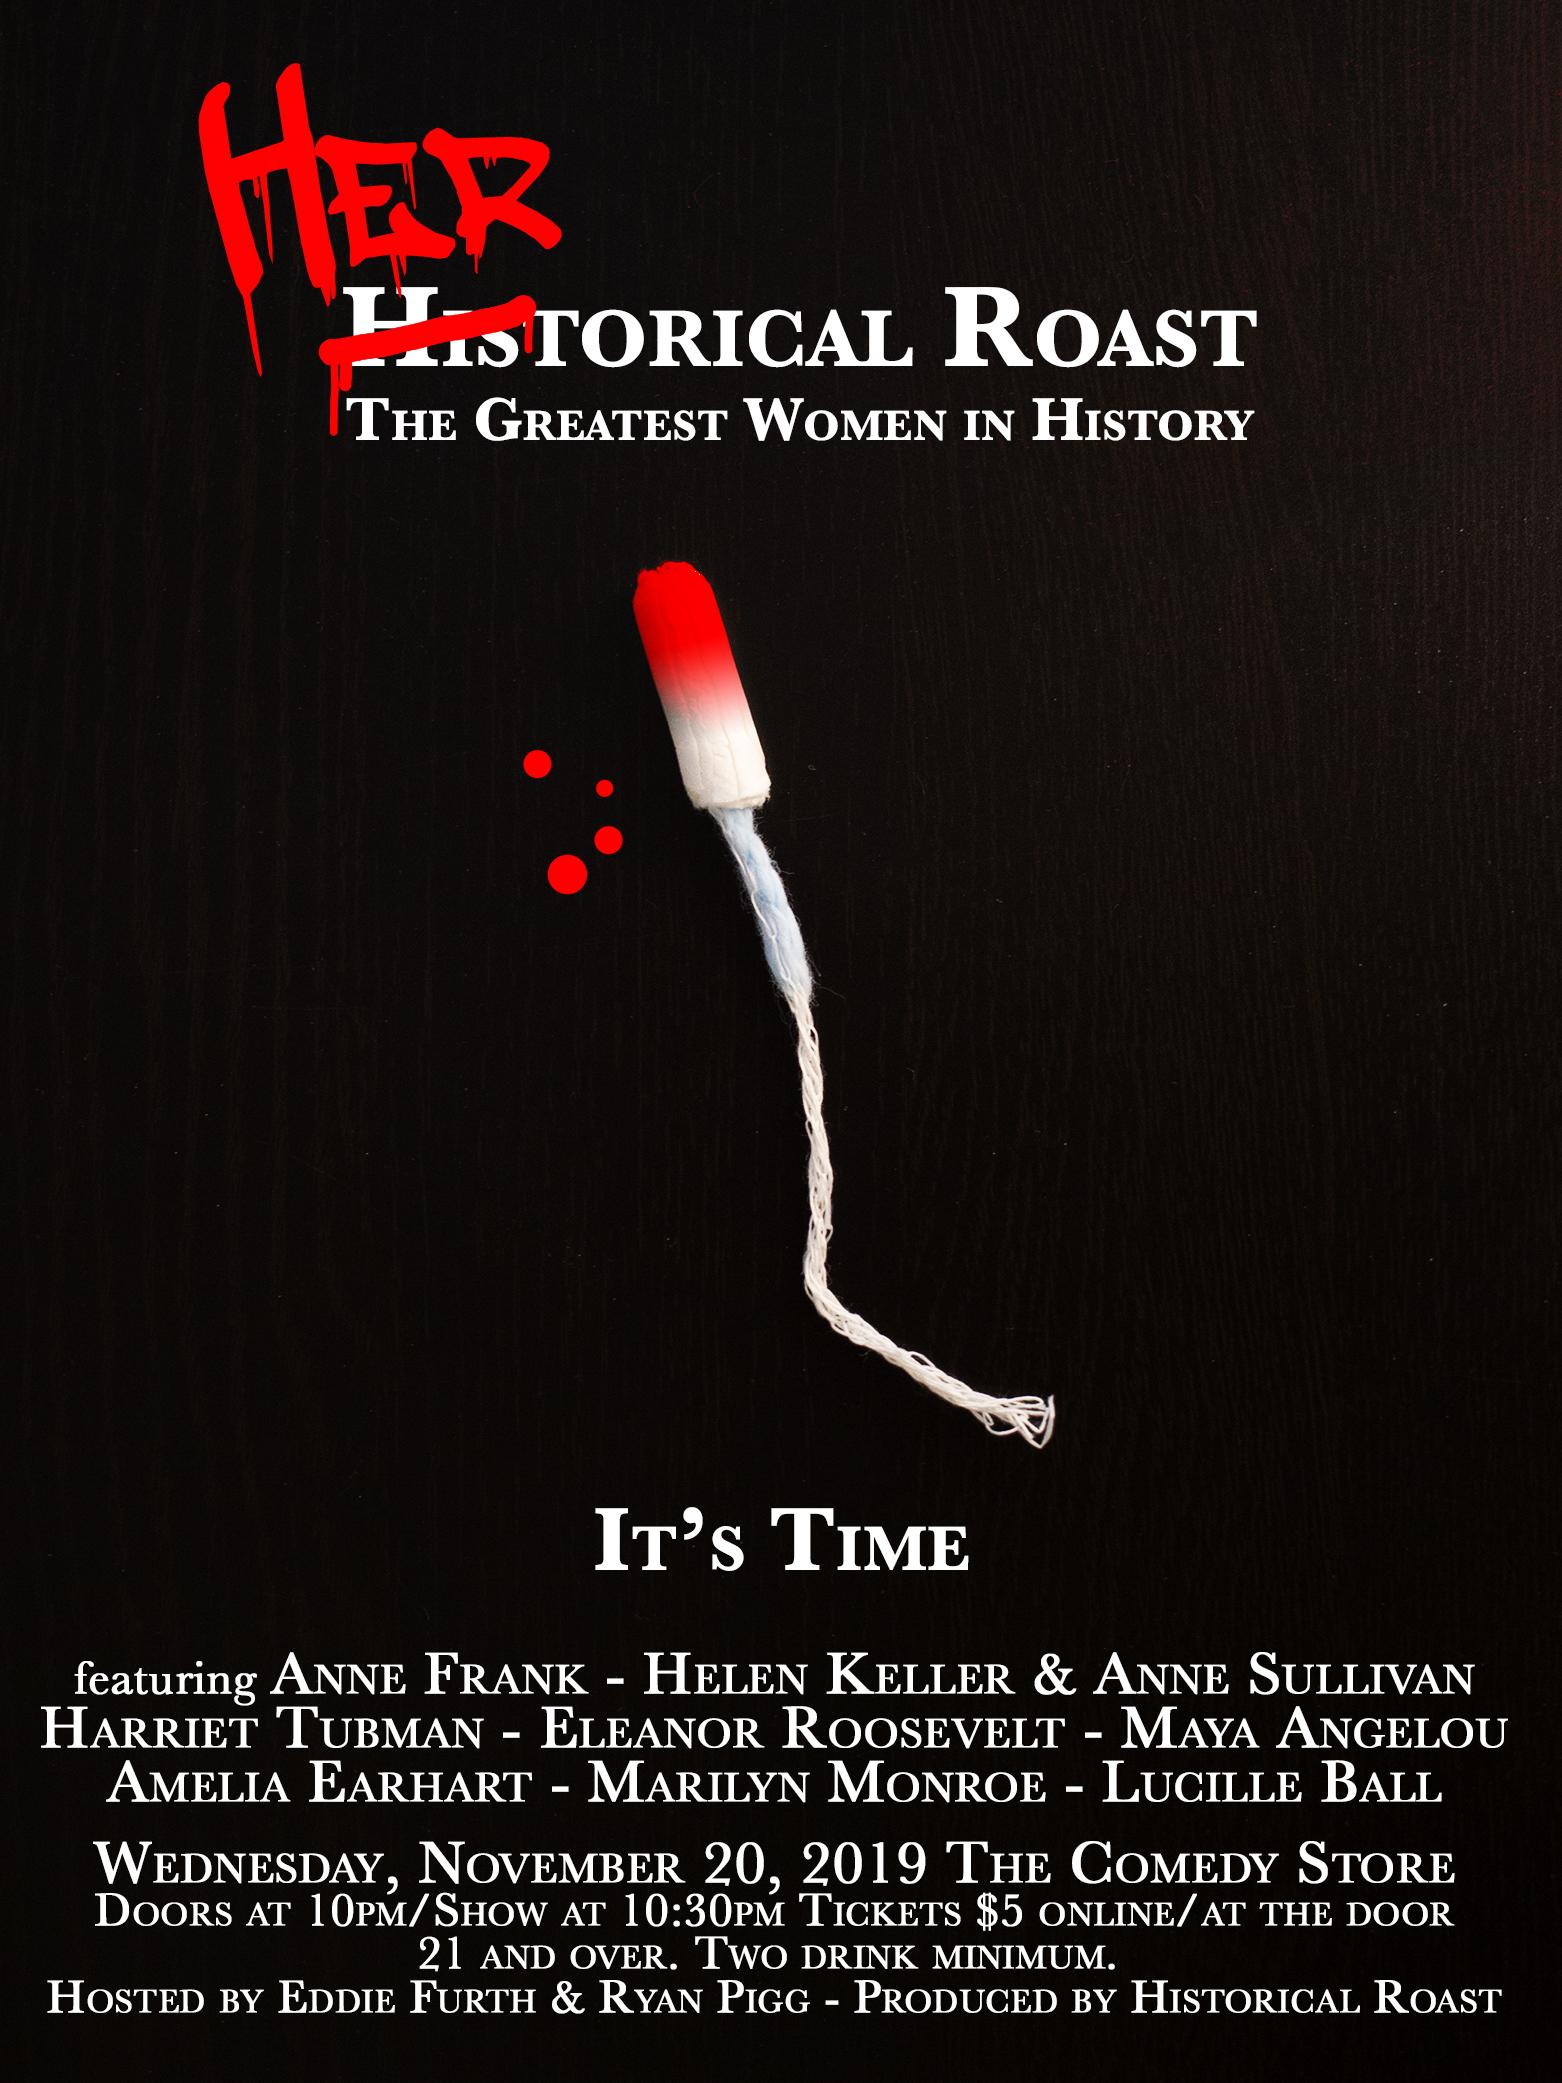 HERstorical Roast: The Greatest Women in History